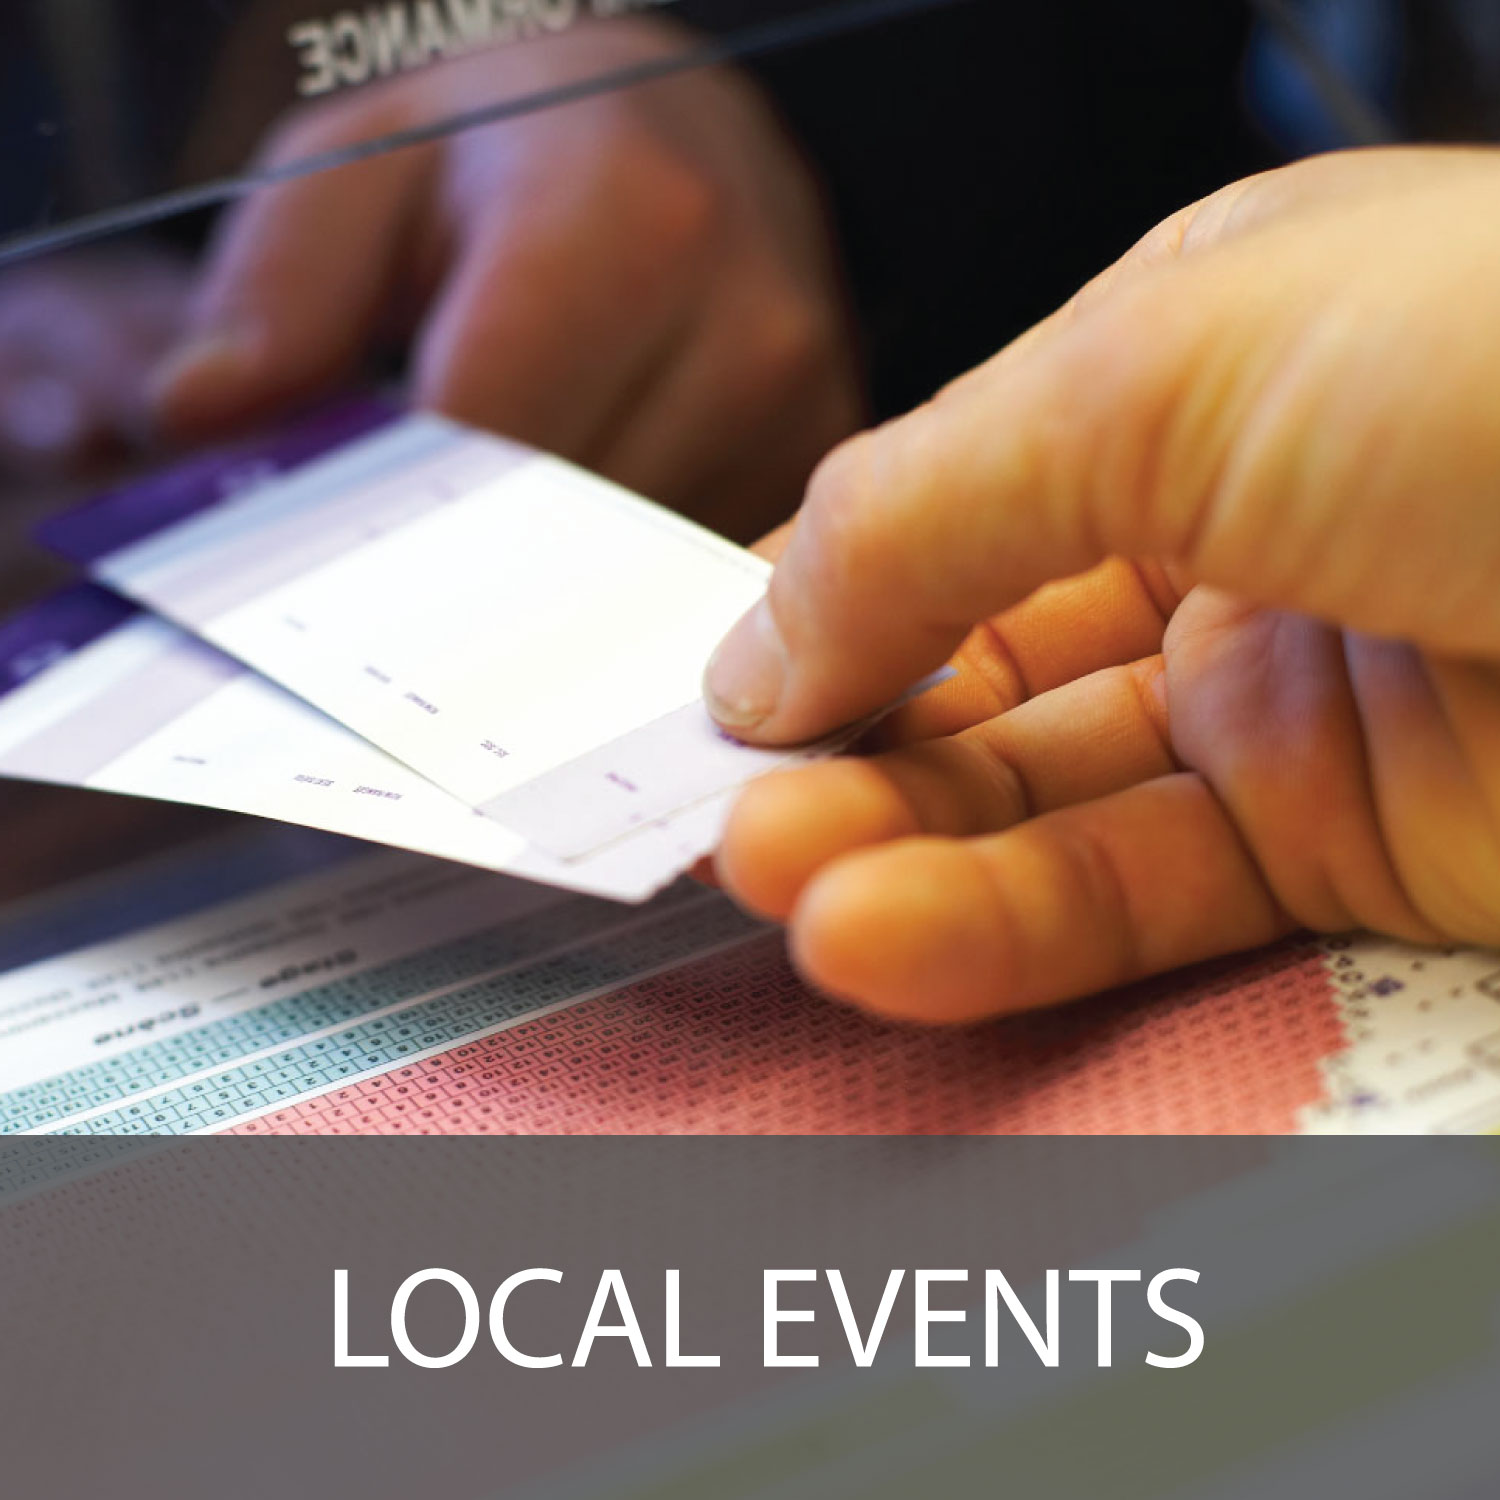 St. Louis Area Local Events